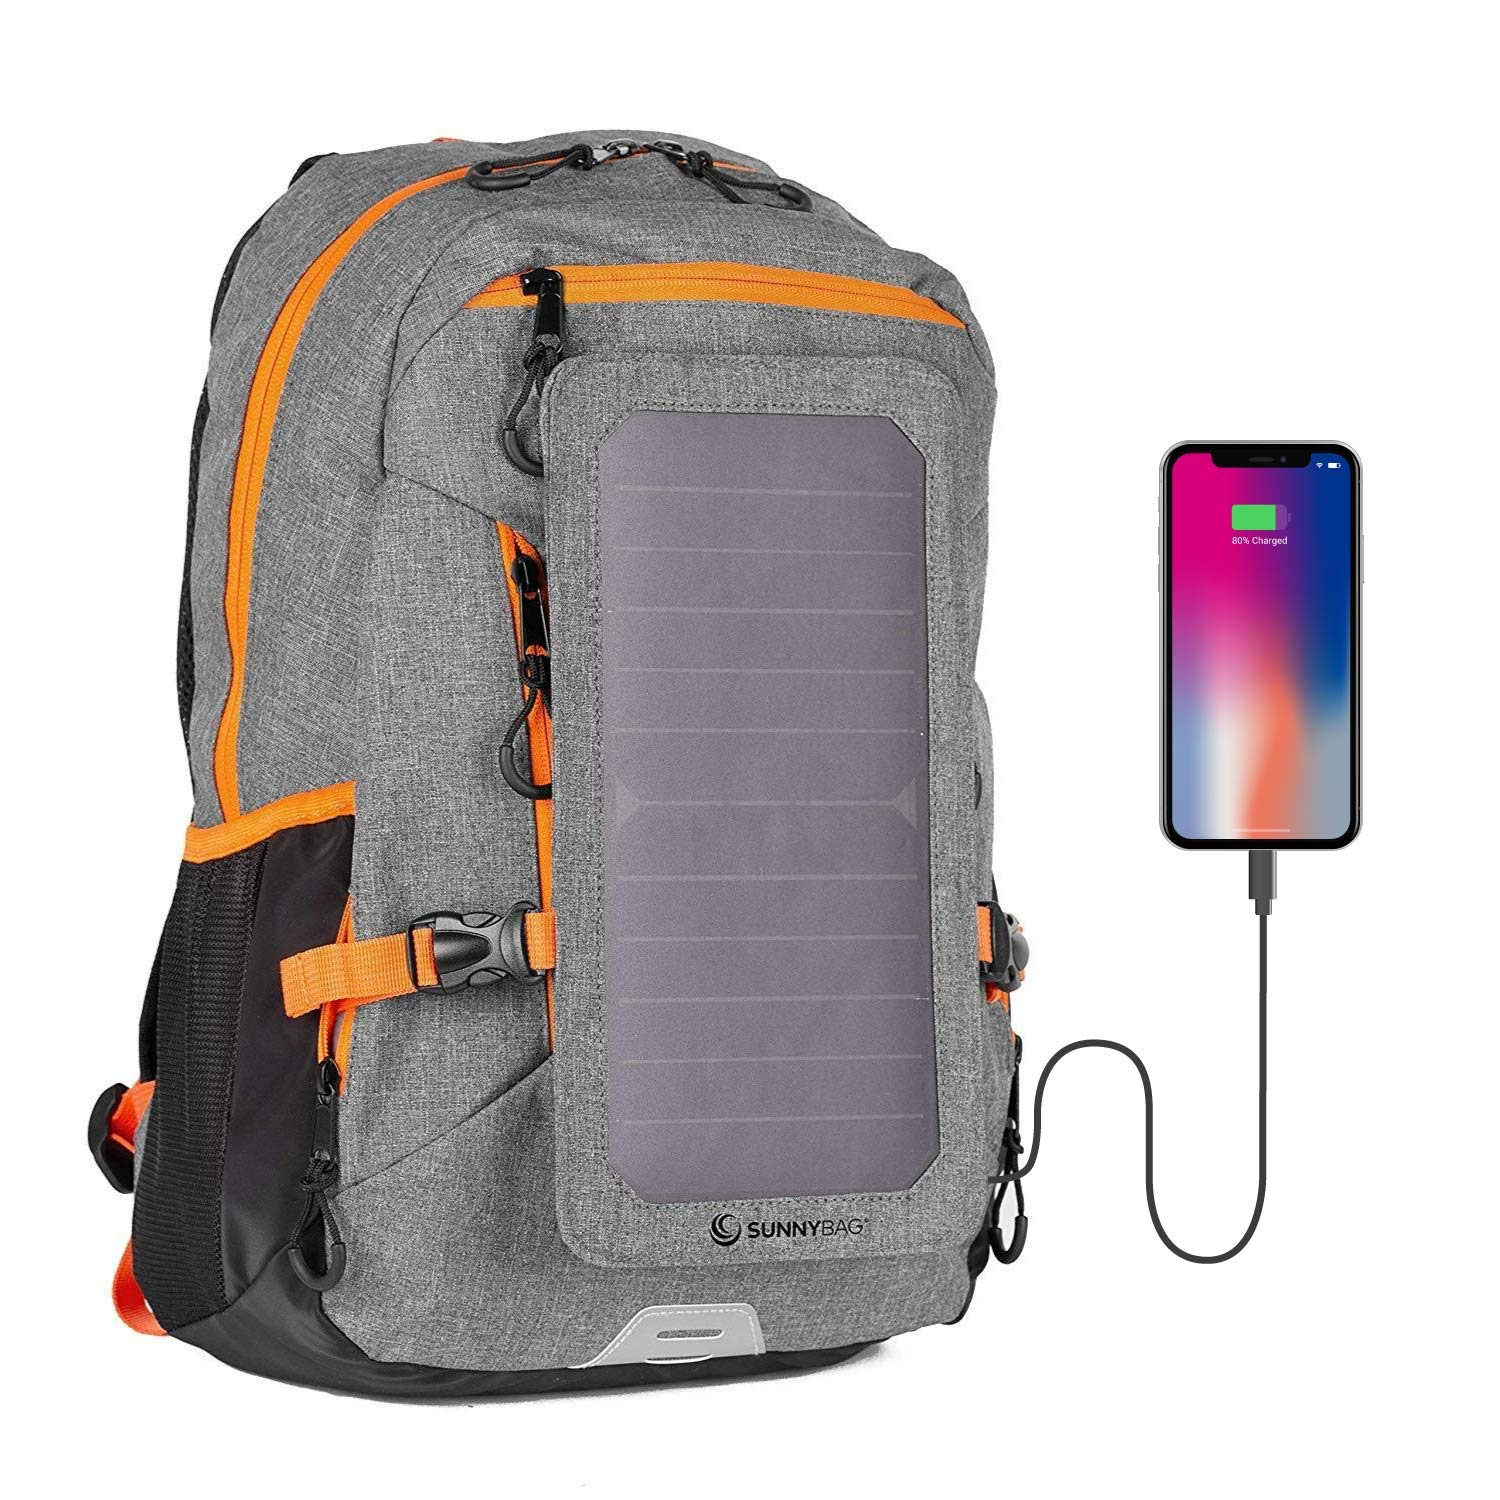 Sunnybag Explorer+ Solar Backpack | World's Strongest Solar Panel for Charging Smartphones and All USB-Devices on The go | 15l Volume and 15'' Laptop Compartment | Gray/Orange